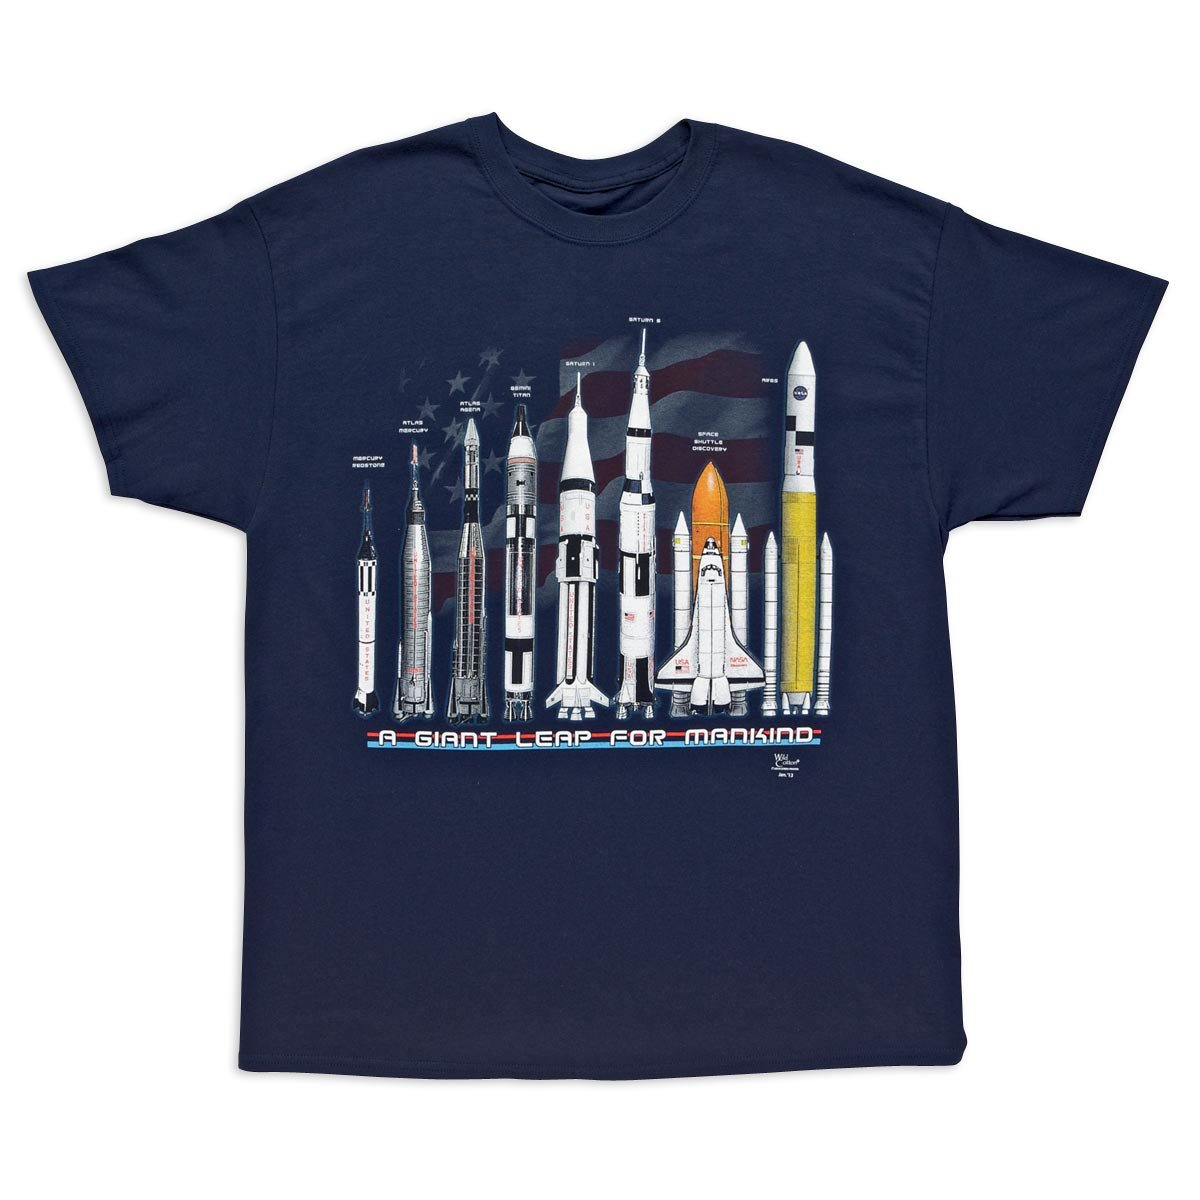 a5ec52d6 ... X-Large fits 46-48 inches, plus size XX-Large fits 50-52 inches. Relive  history space rocket science NASA wearing this NASA Shirt Tshirt ...